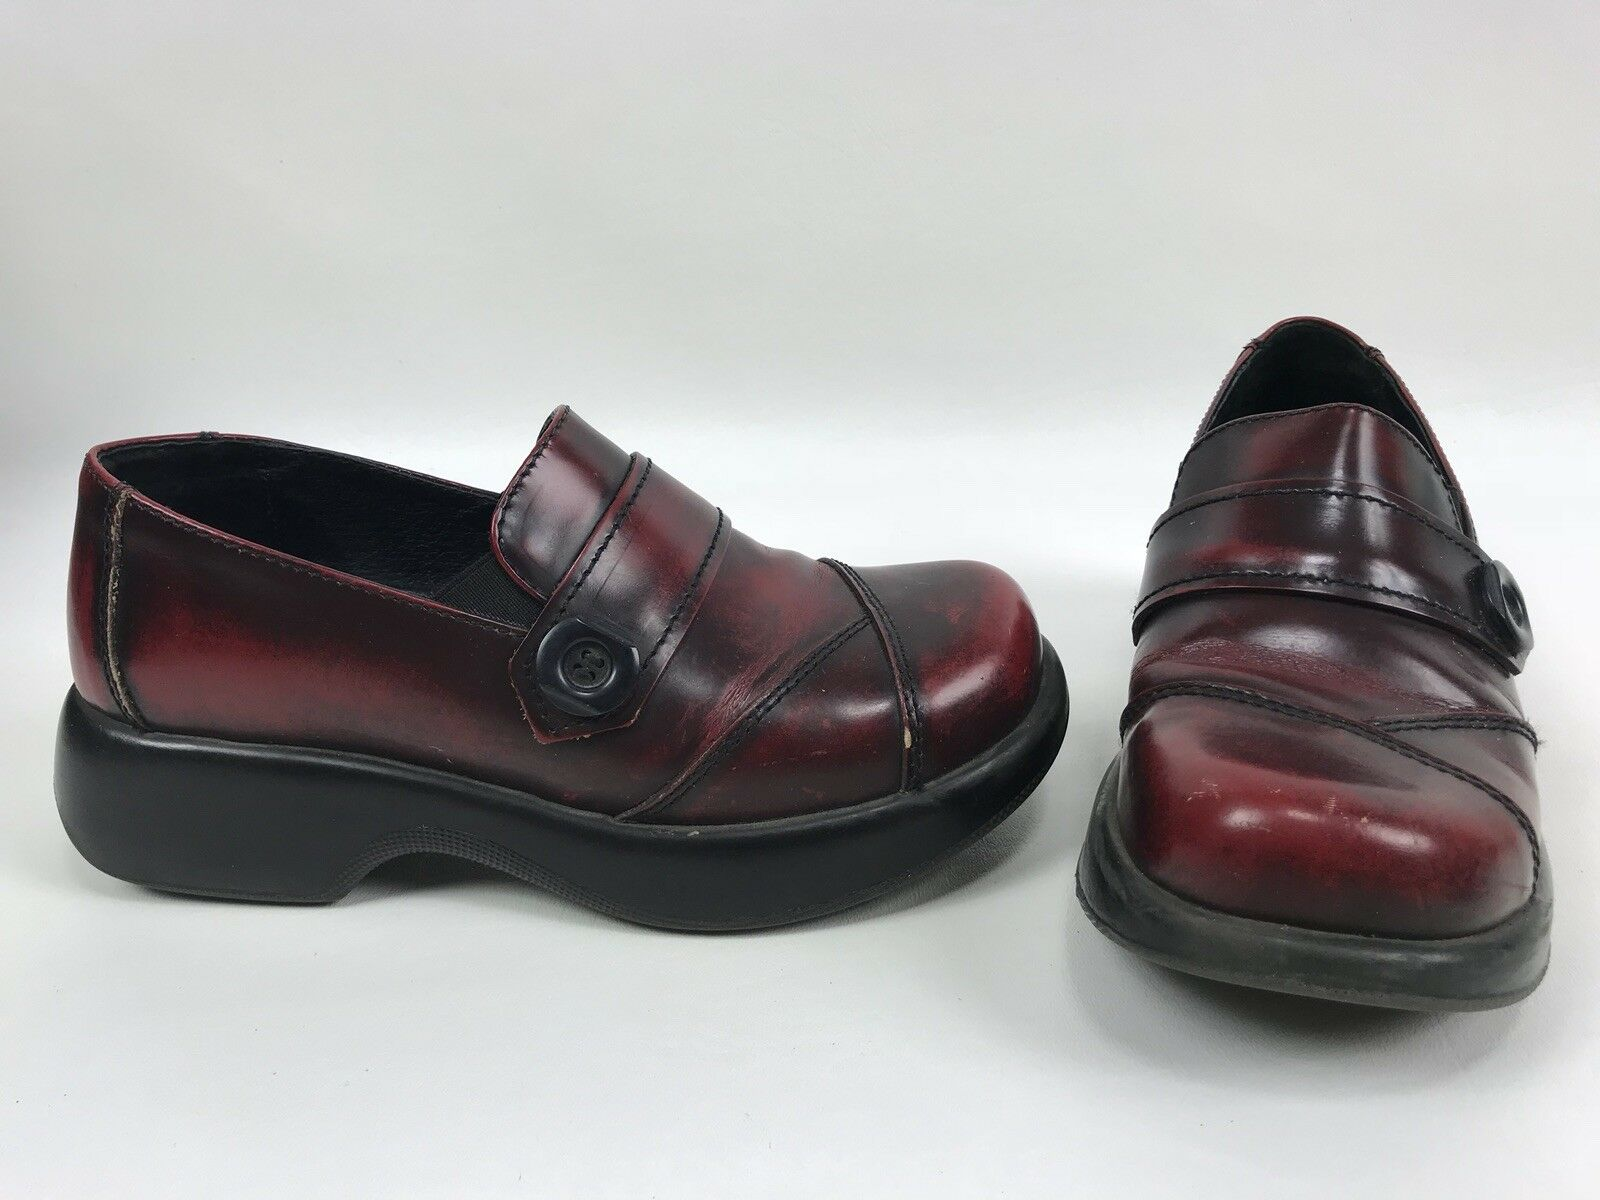 Dansko Womens 37 6.5 - 7 Red Rub Leather Button Loafer Clog Occupational Career